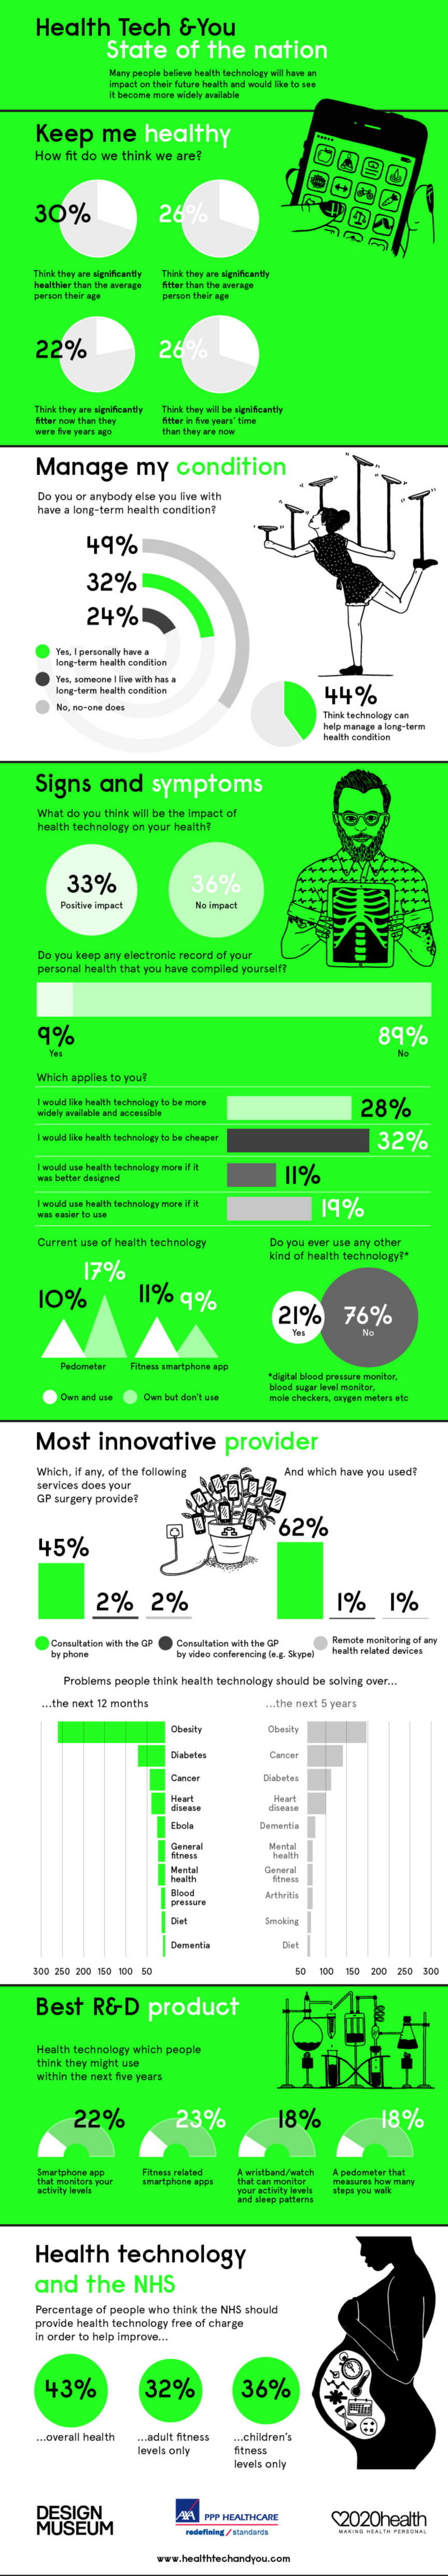 Health Tech & You: State of the nation